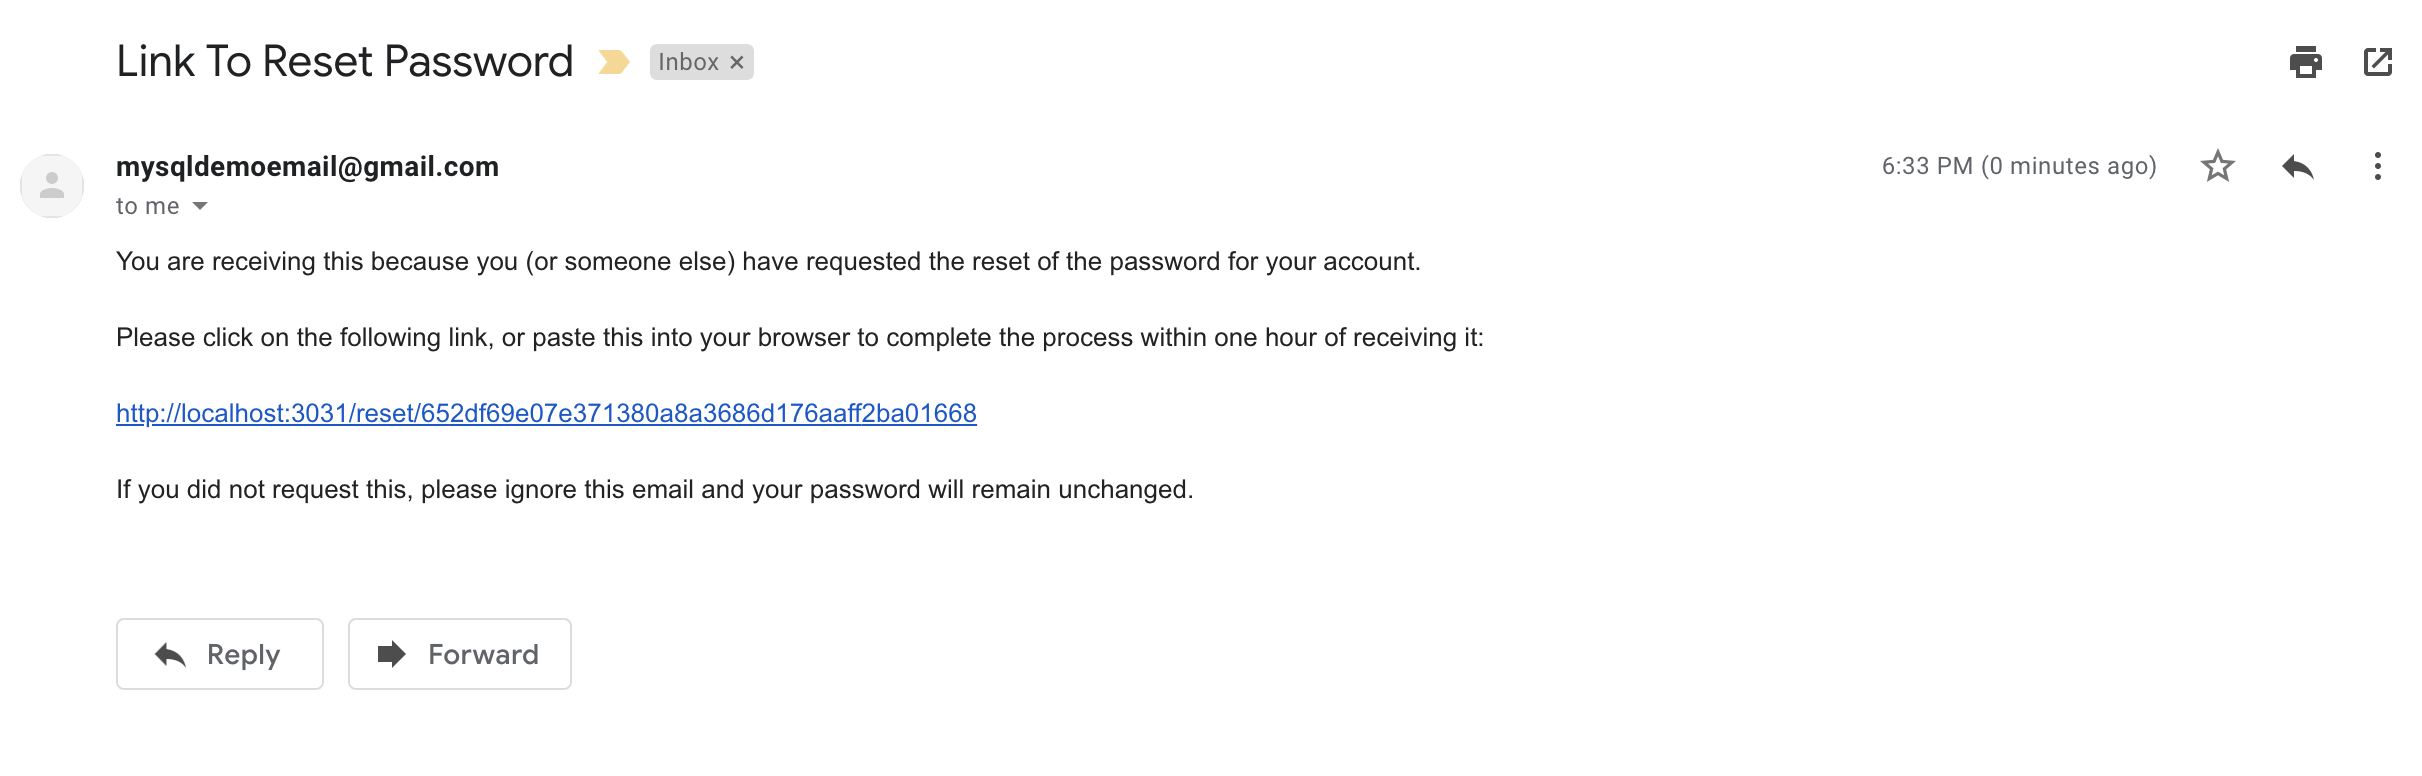 Password Reset Emails In Your React App Made Easy with